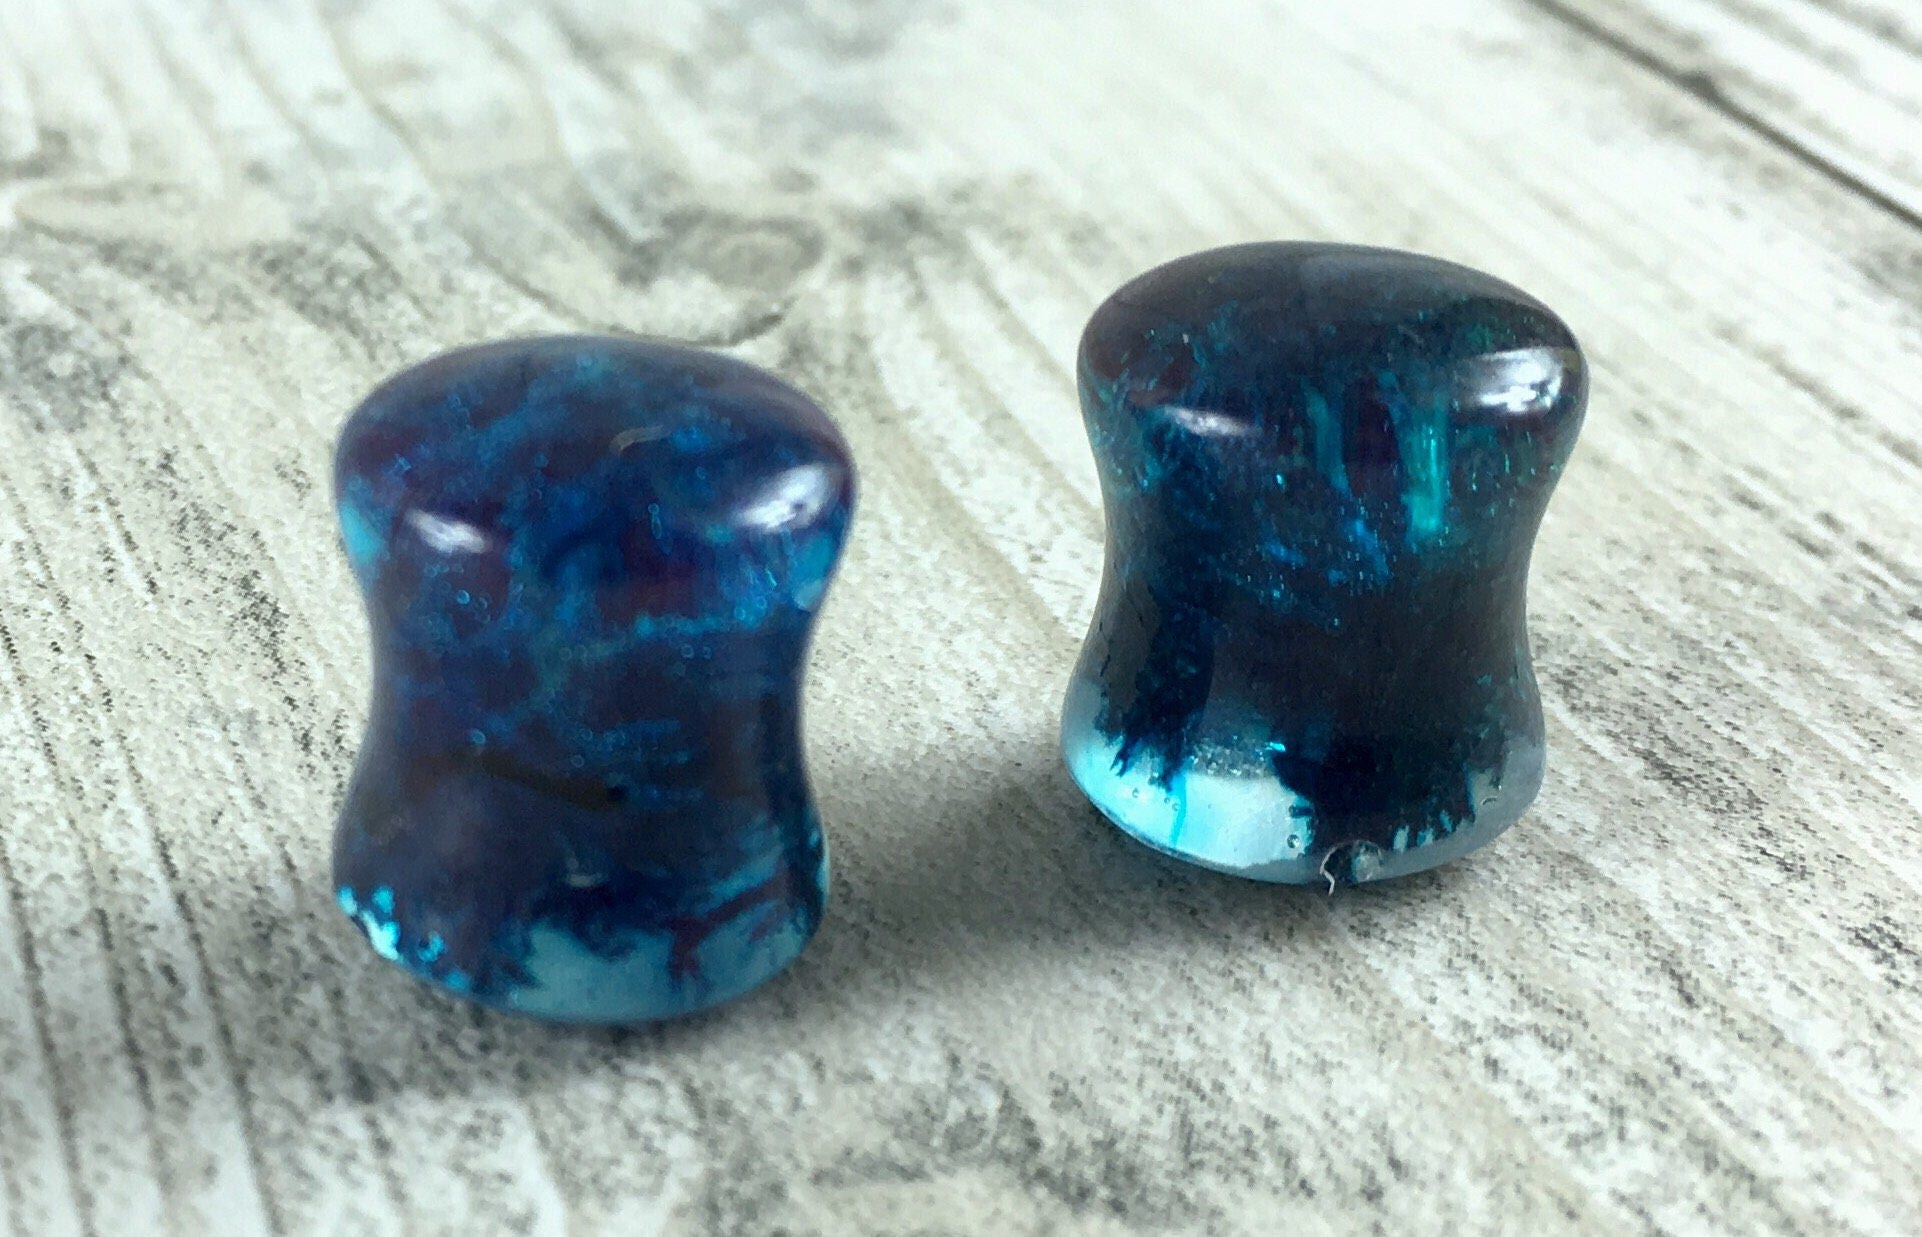 Blue moss ear plugsresin earplugsblue ear plugsreindeer mossear gaugesterrarium jewelryterrarium ear plugs